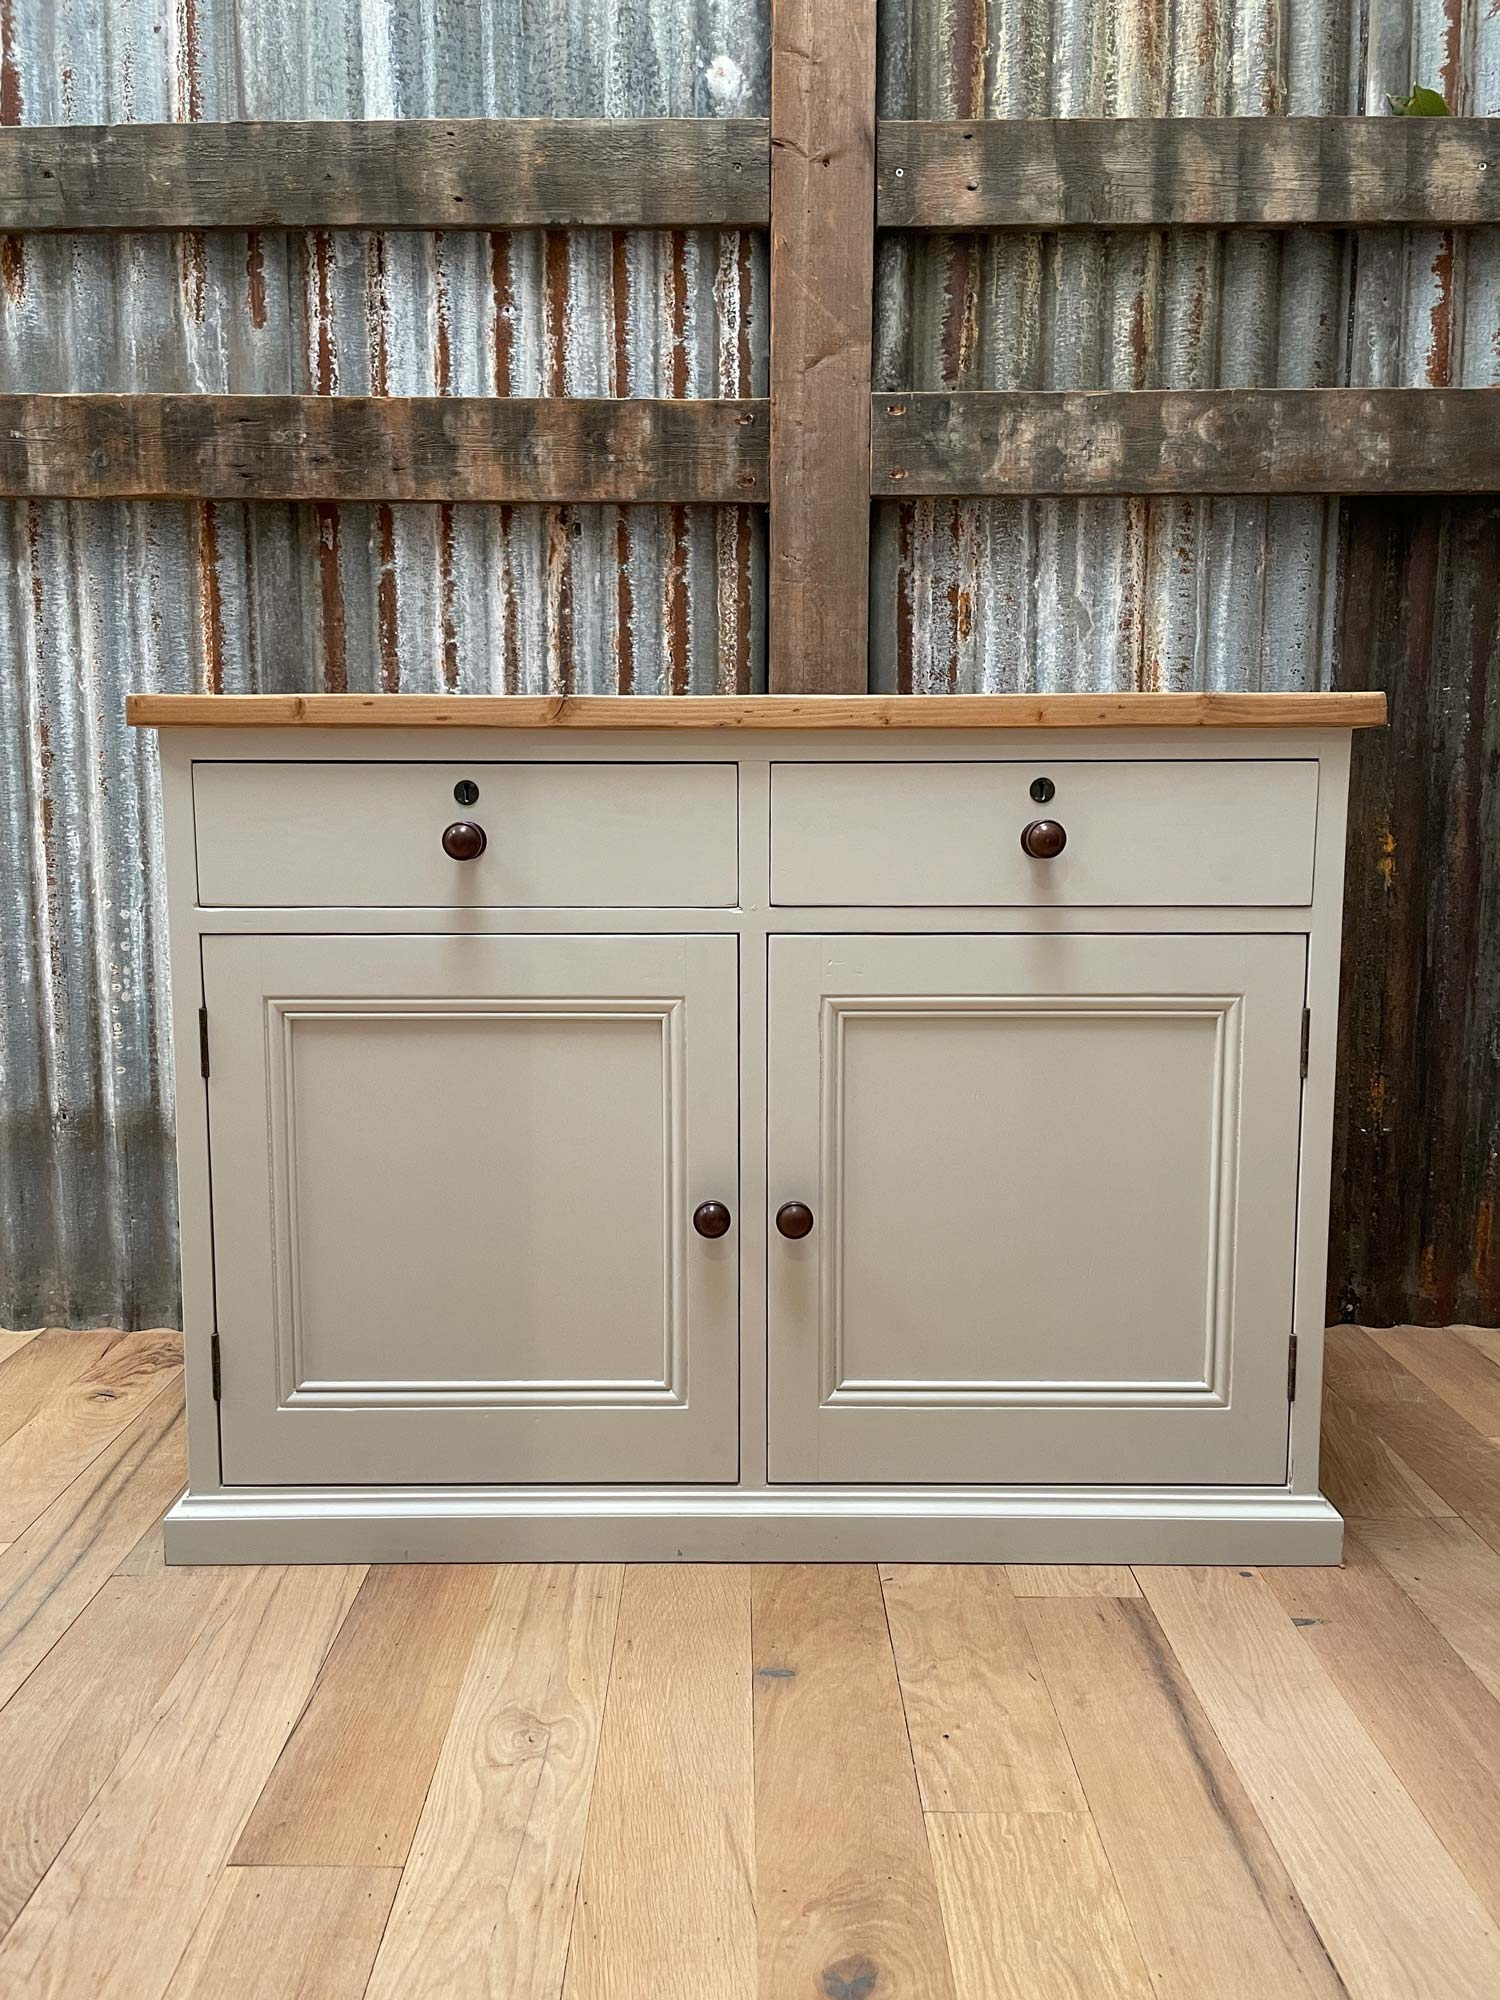 Original pained sideboard